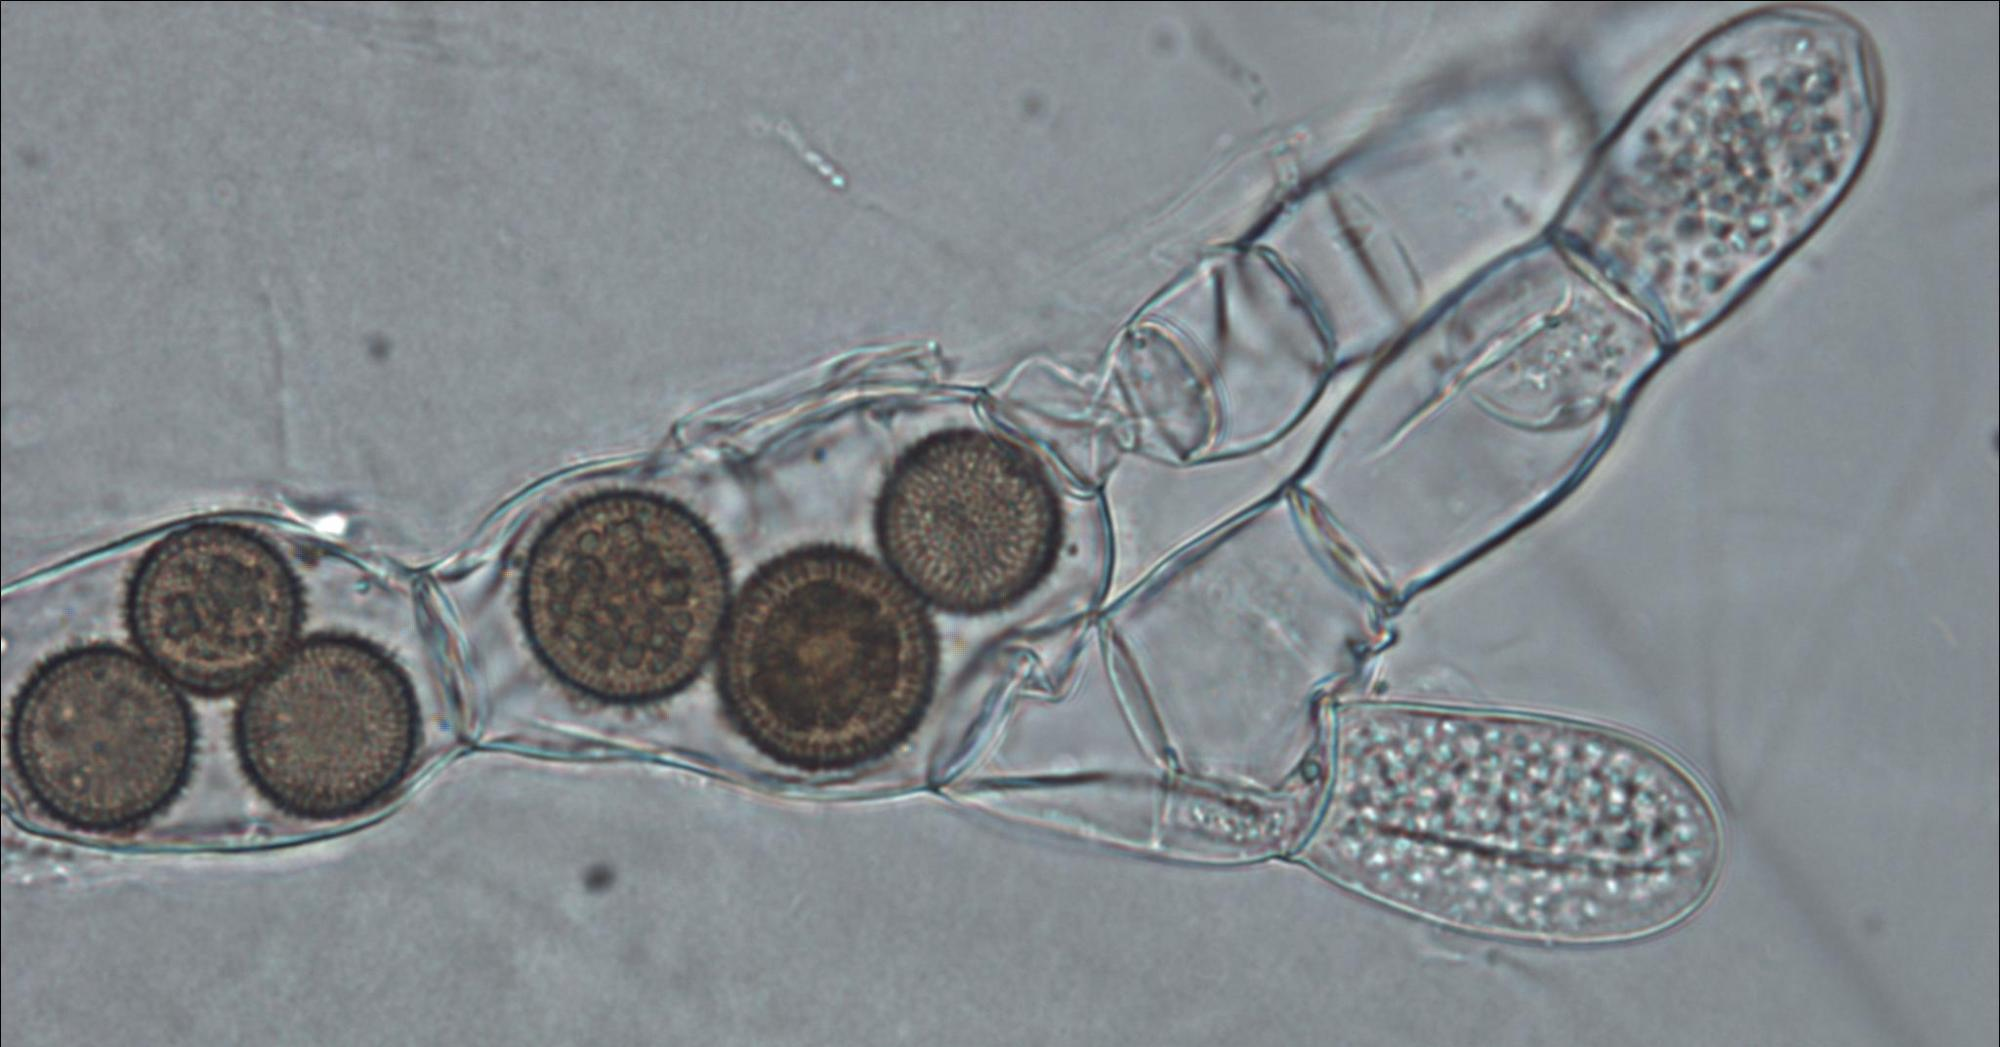 hight resolution of fungi cell